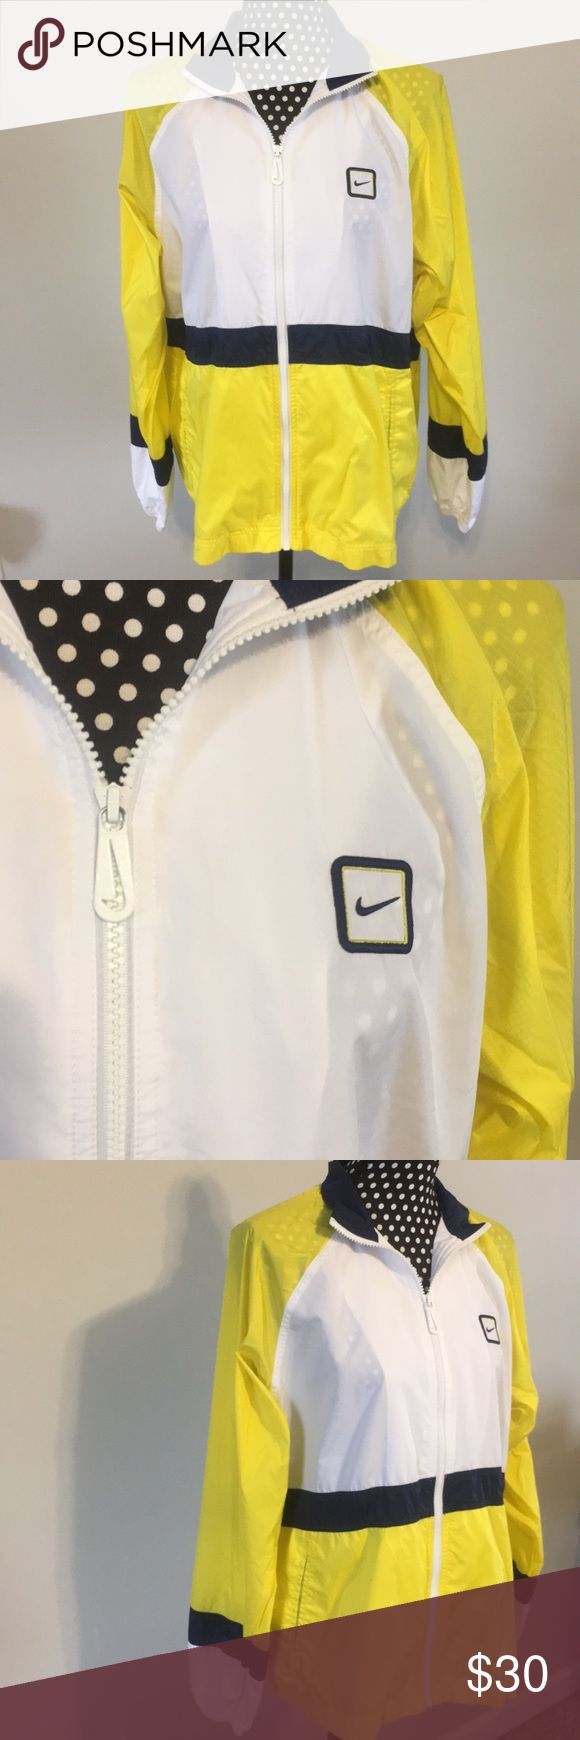 Nike windbreaker jacket Nike windbreaker is yellow, navy blue, and white. Perfect condition! Zips down the front. Size M(8-10). I think it could be a men's jacket or womens(: Nike Jackets & Coats